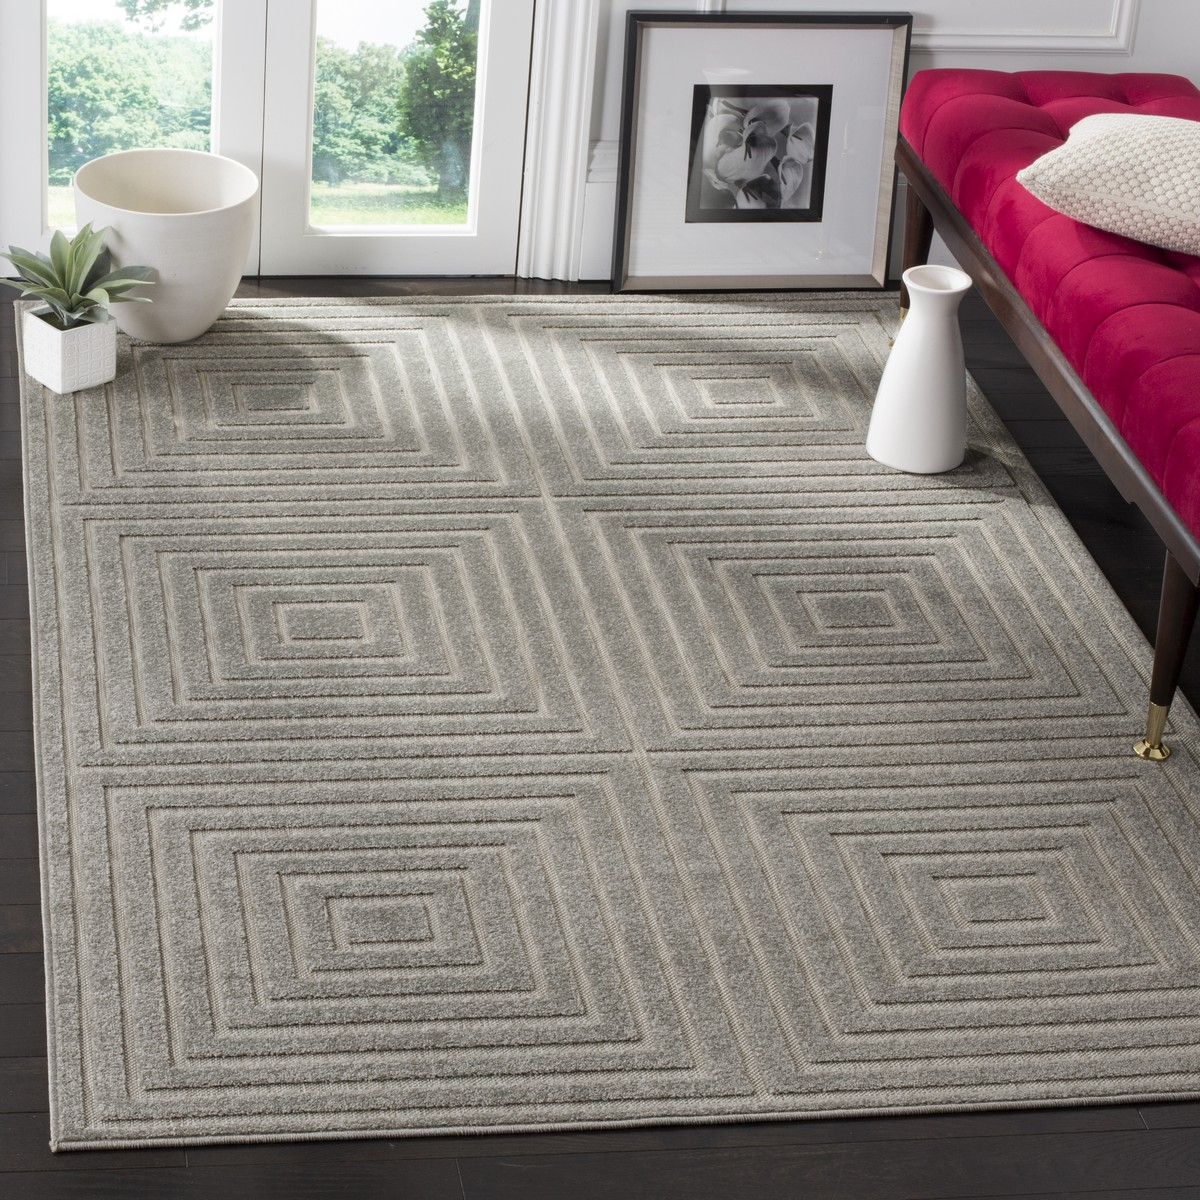 Rug Cot936g Cottage Area Rugs By Safavieh